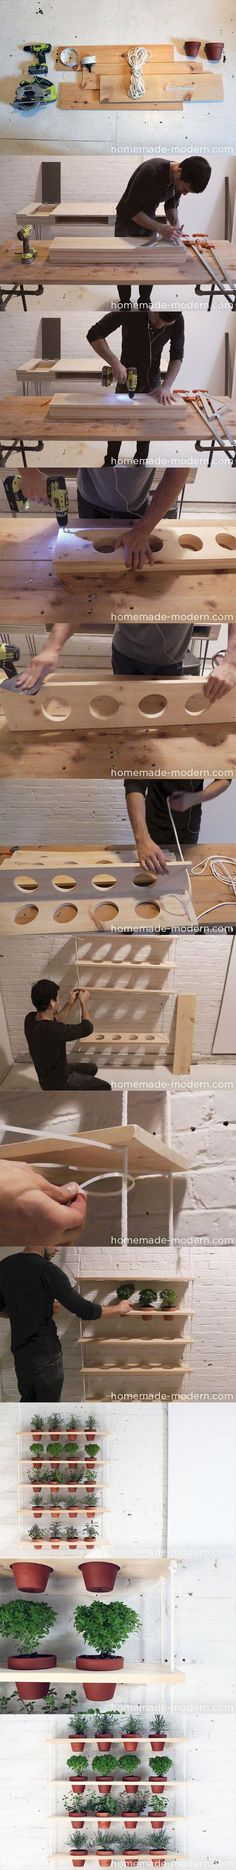 Amazing Do It Yourself Craft Ideas - 40 Pics